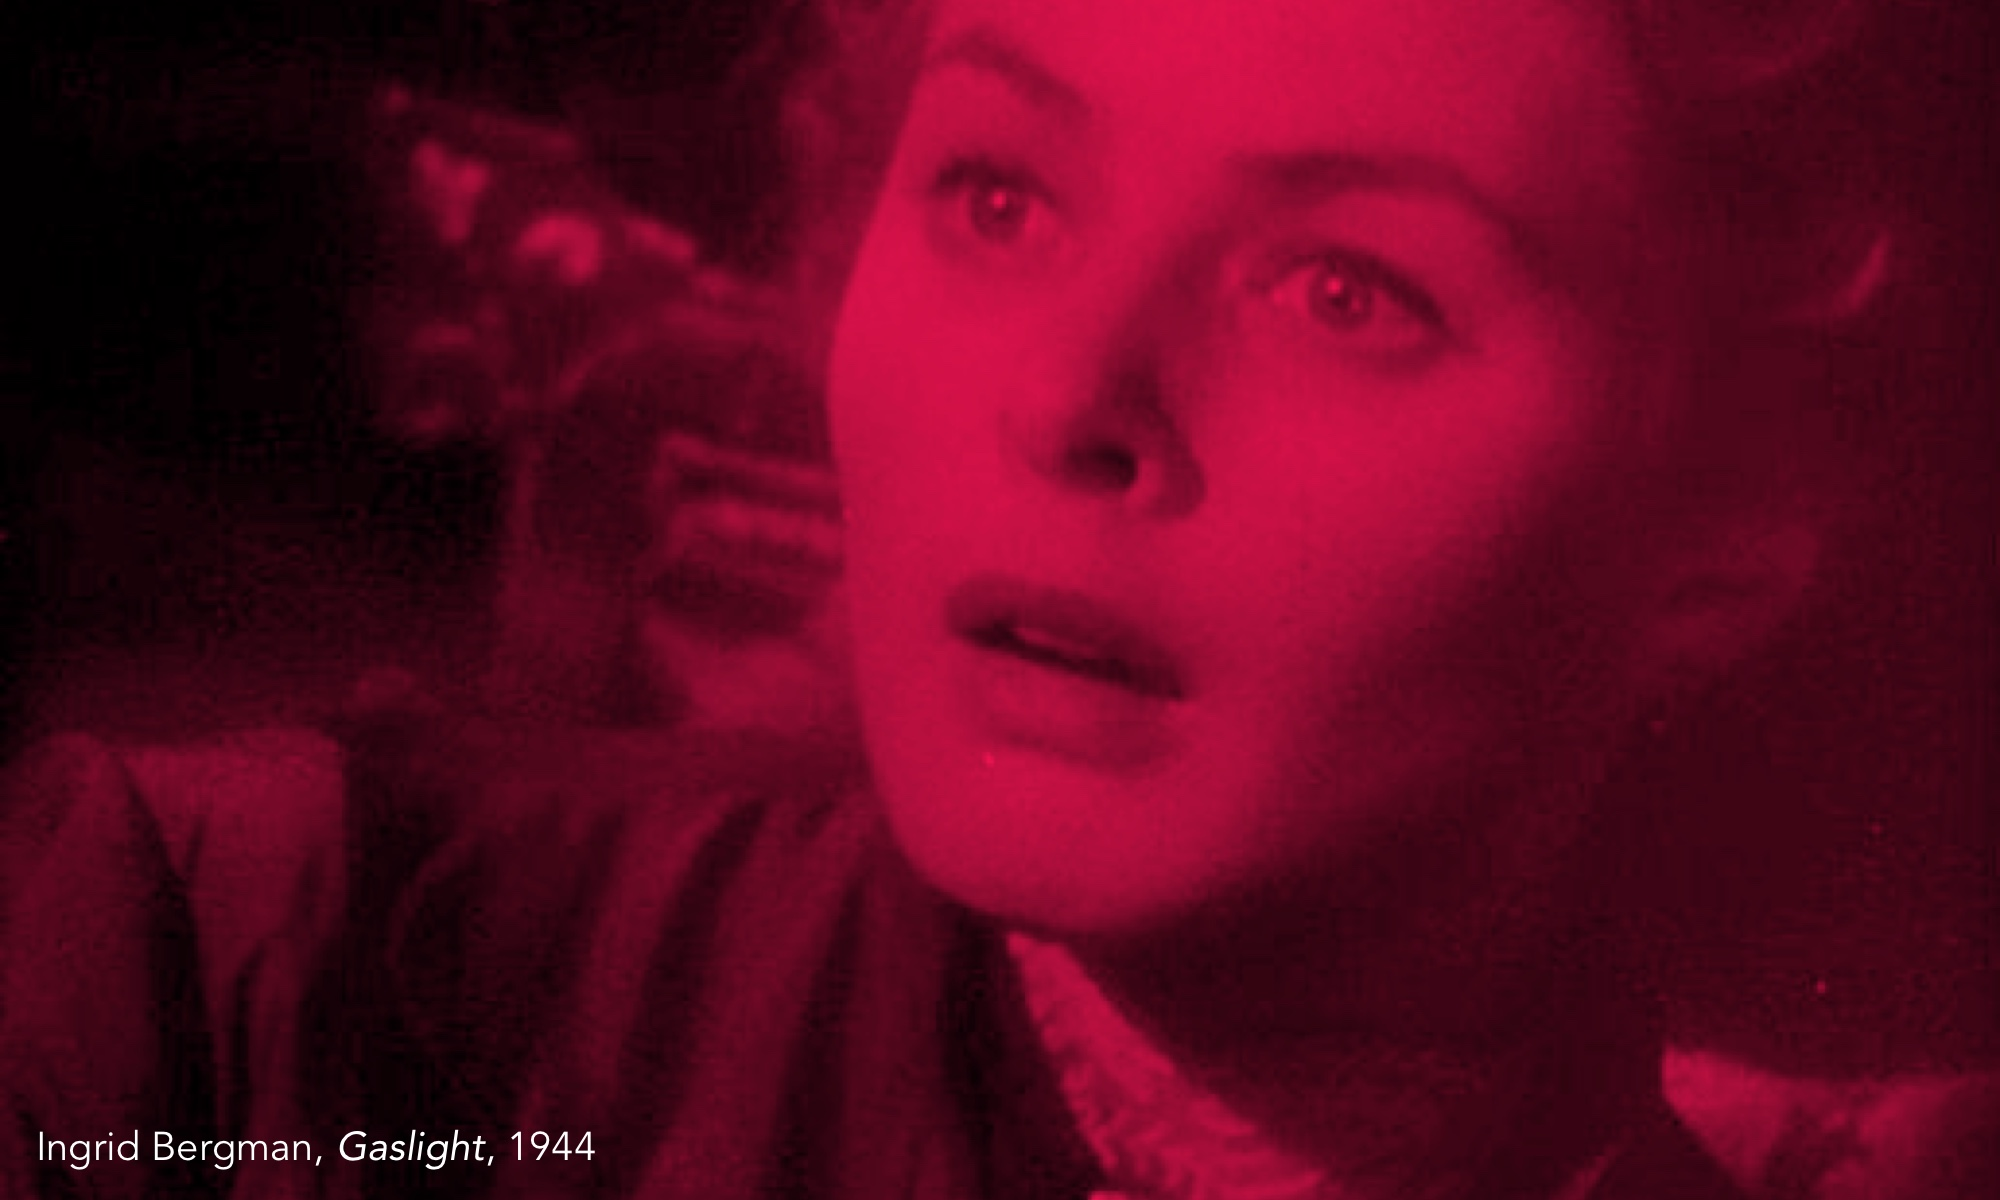 A still from the 1944 movie, Gaslight, with Ingrid Bergman looking terrified.